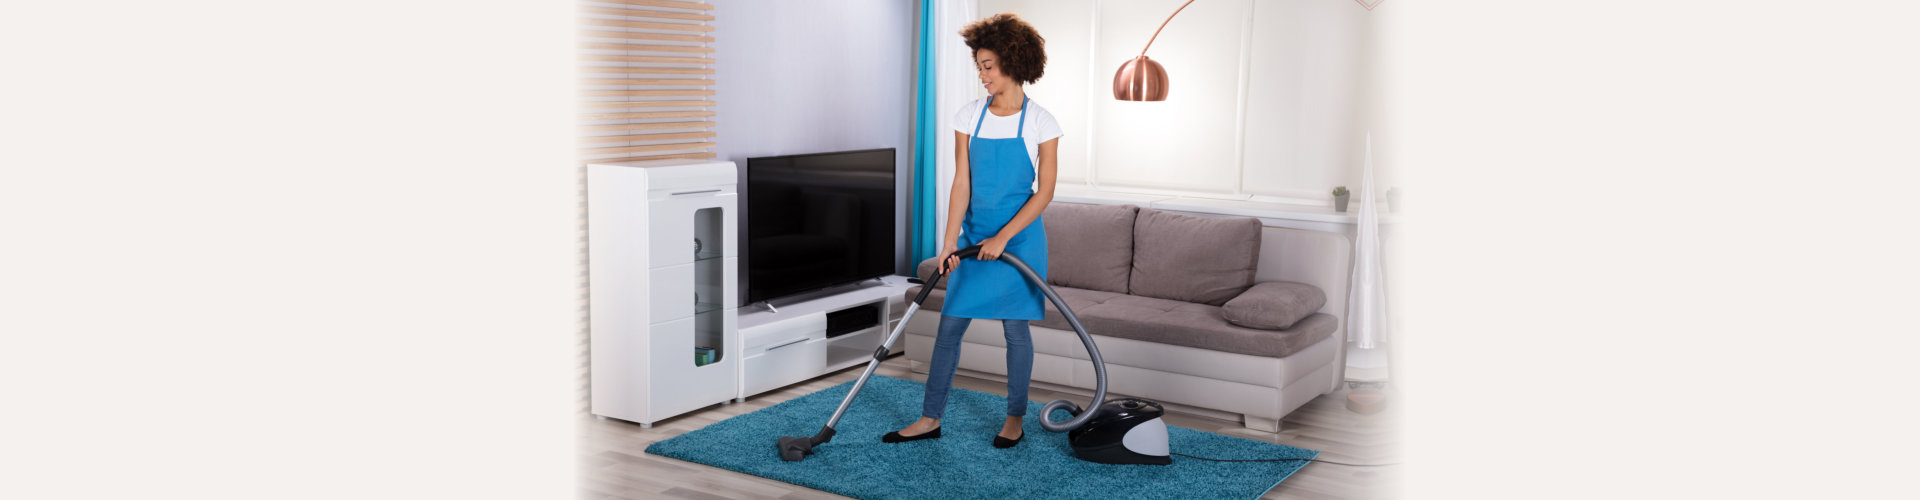 janitress cleaning carpet